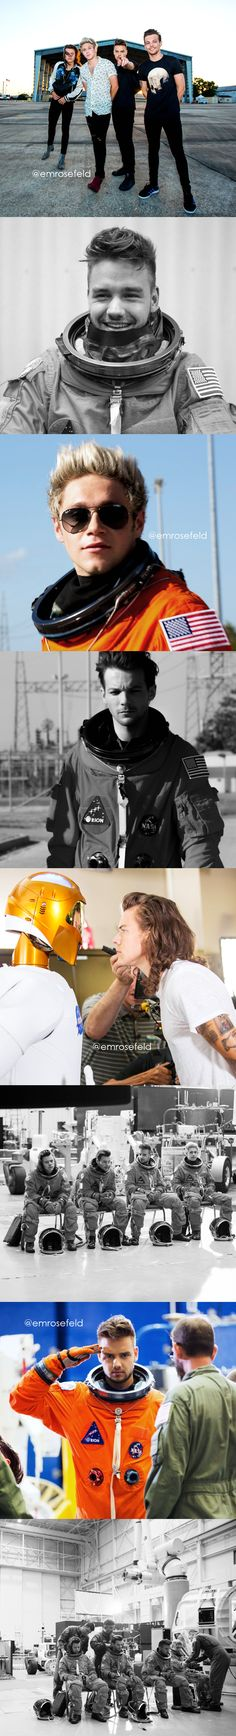 One Direction | Drag Me Down PLANET X IS COMING ITS ALMOST TIME TO FLY BE READY!